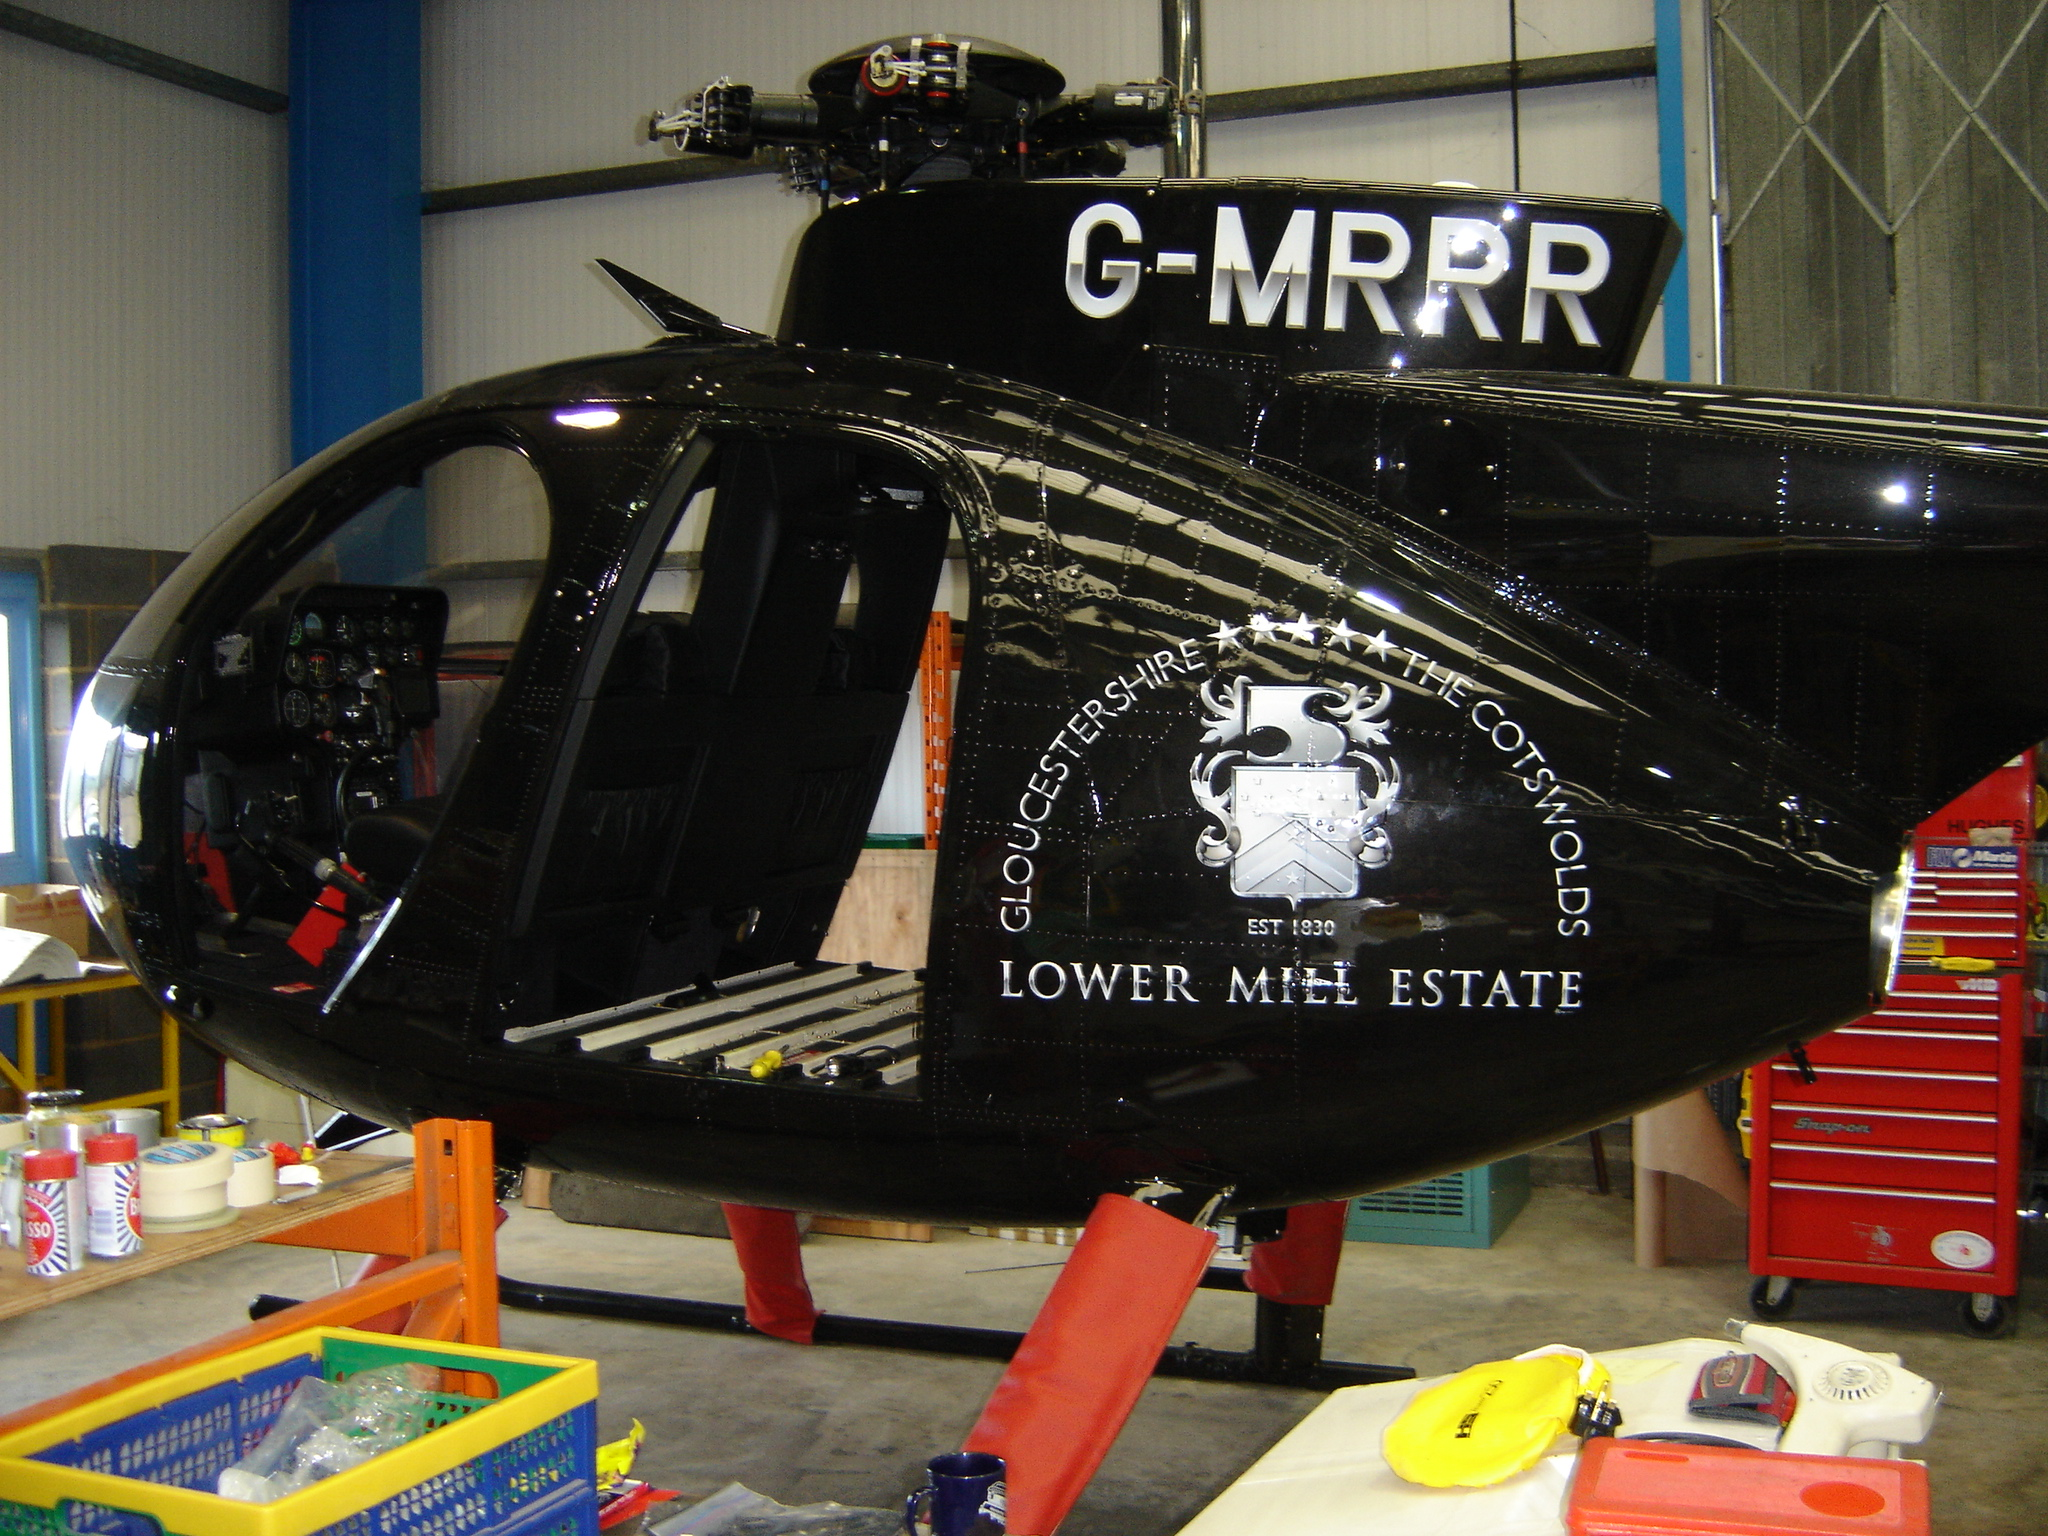 skytech helicopters with G Mrrr Refurb on Foldable RC Drone With Wifi FPV 720P HD Camera Flight Path Setting Quadcopter Red p363883 also Be belgian air force additionally G Mrrr Refurb as well Centrale Electrique Im as well Engine Bay Refurb.